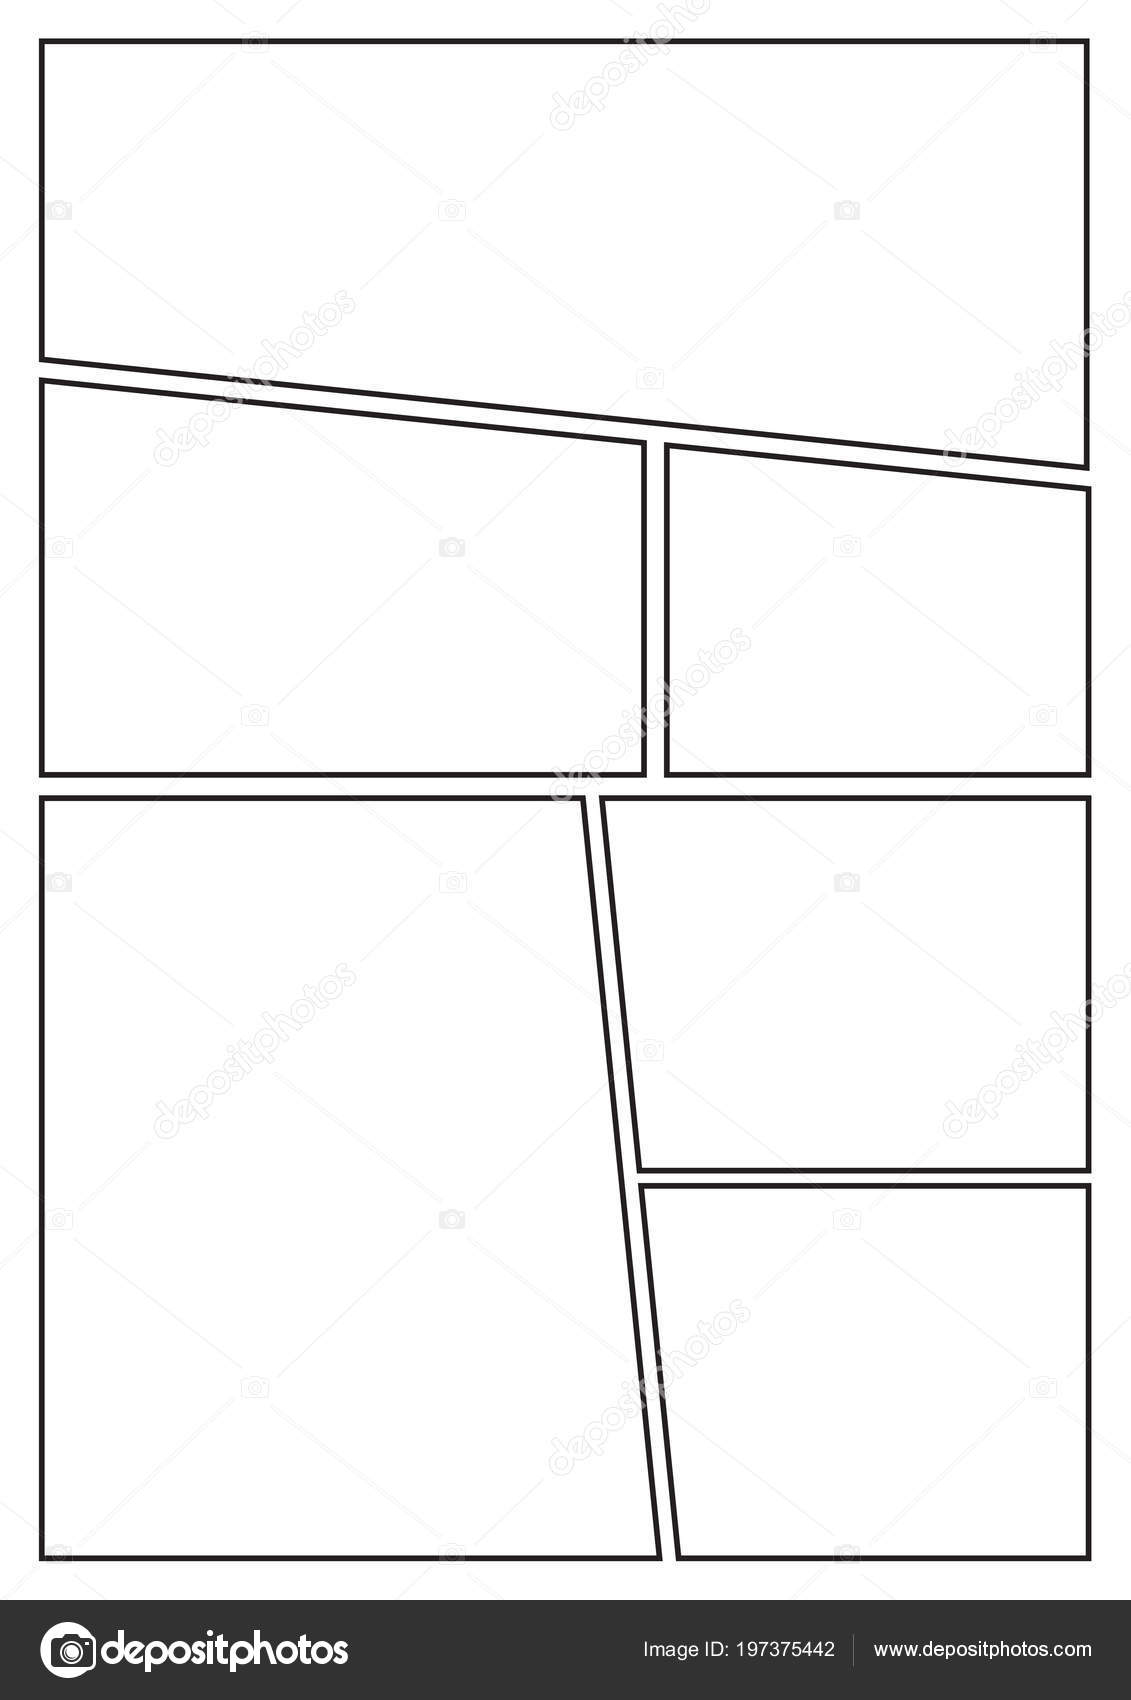 Manga Storyboard Layout Template Rapidly Create Comic Book Style ...